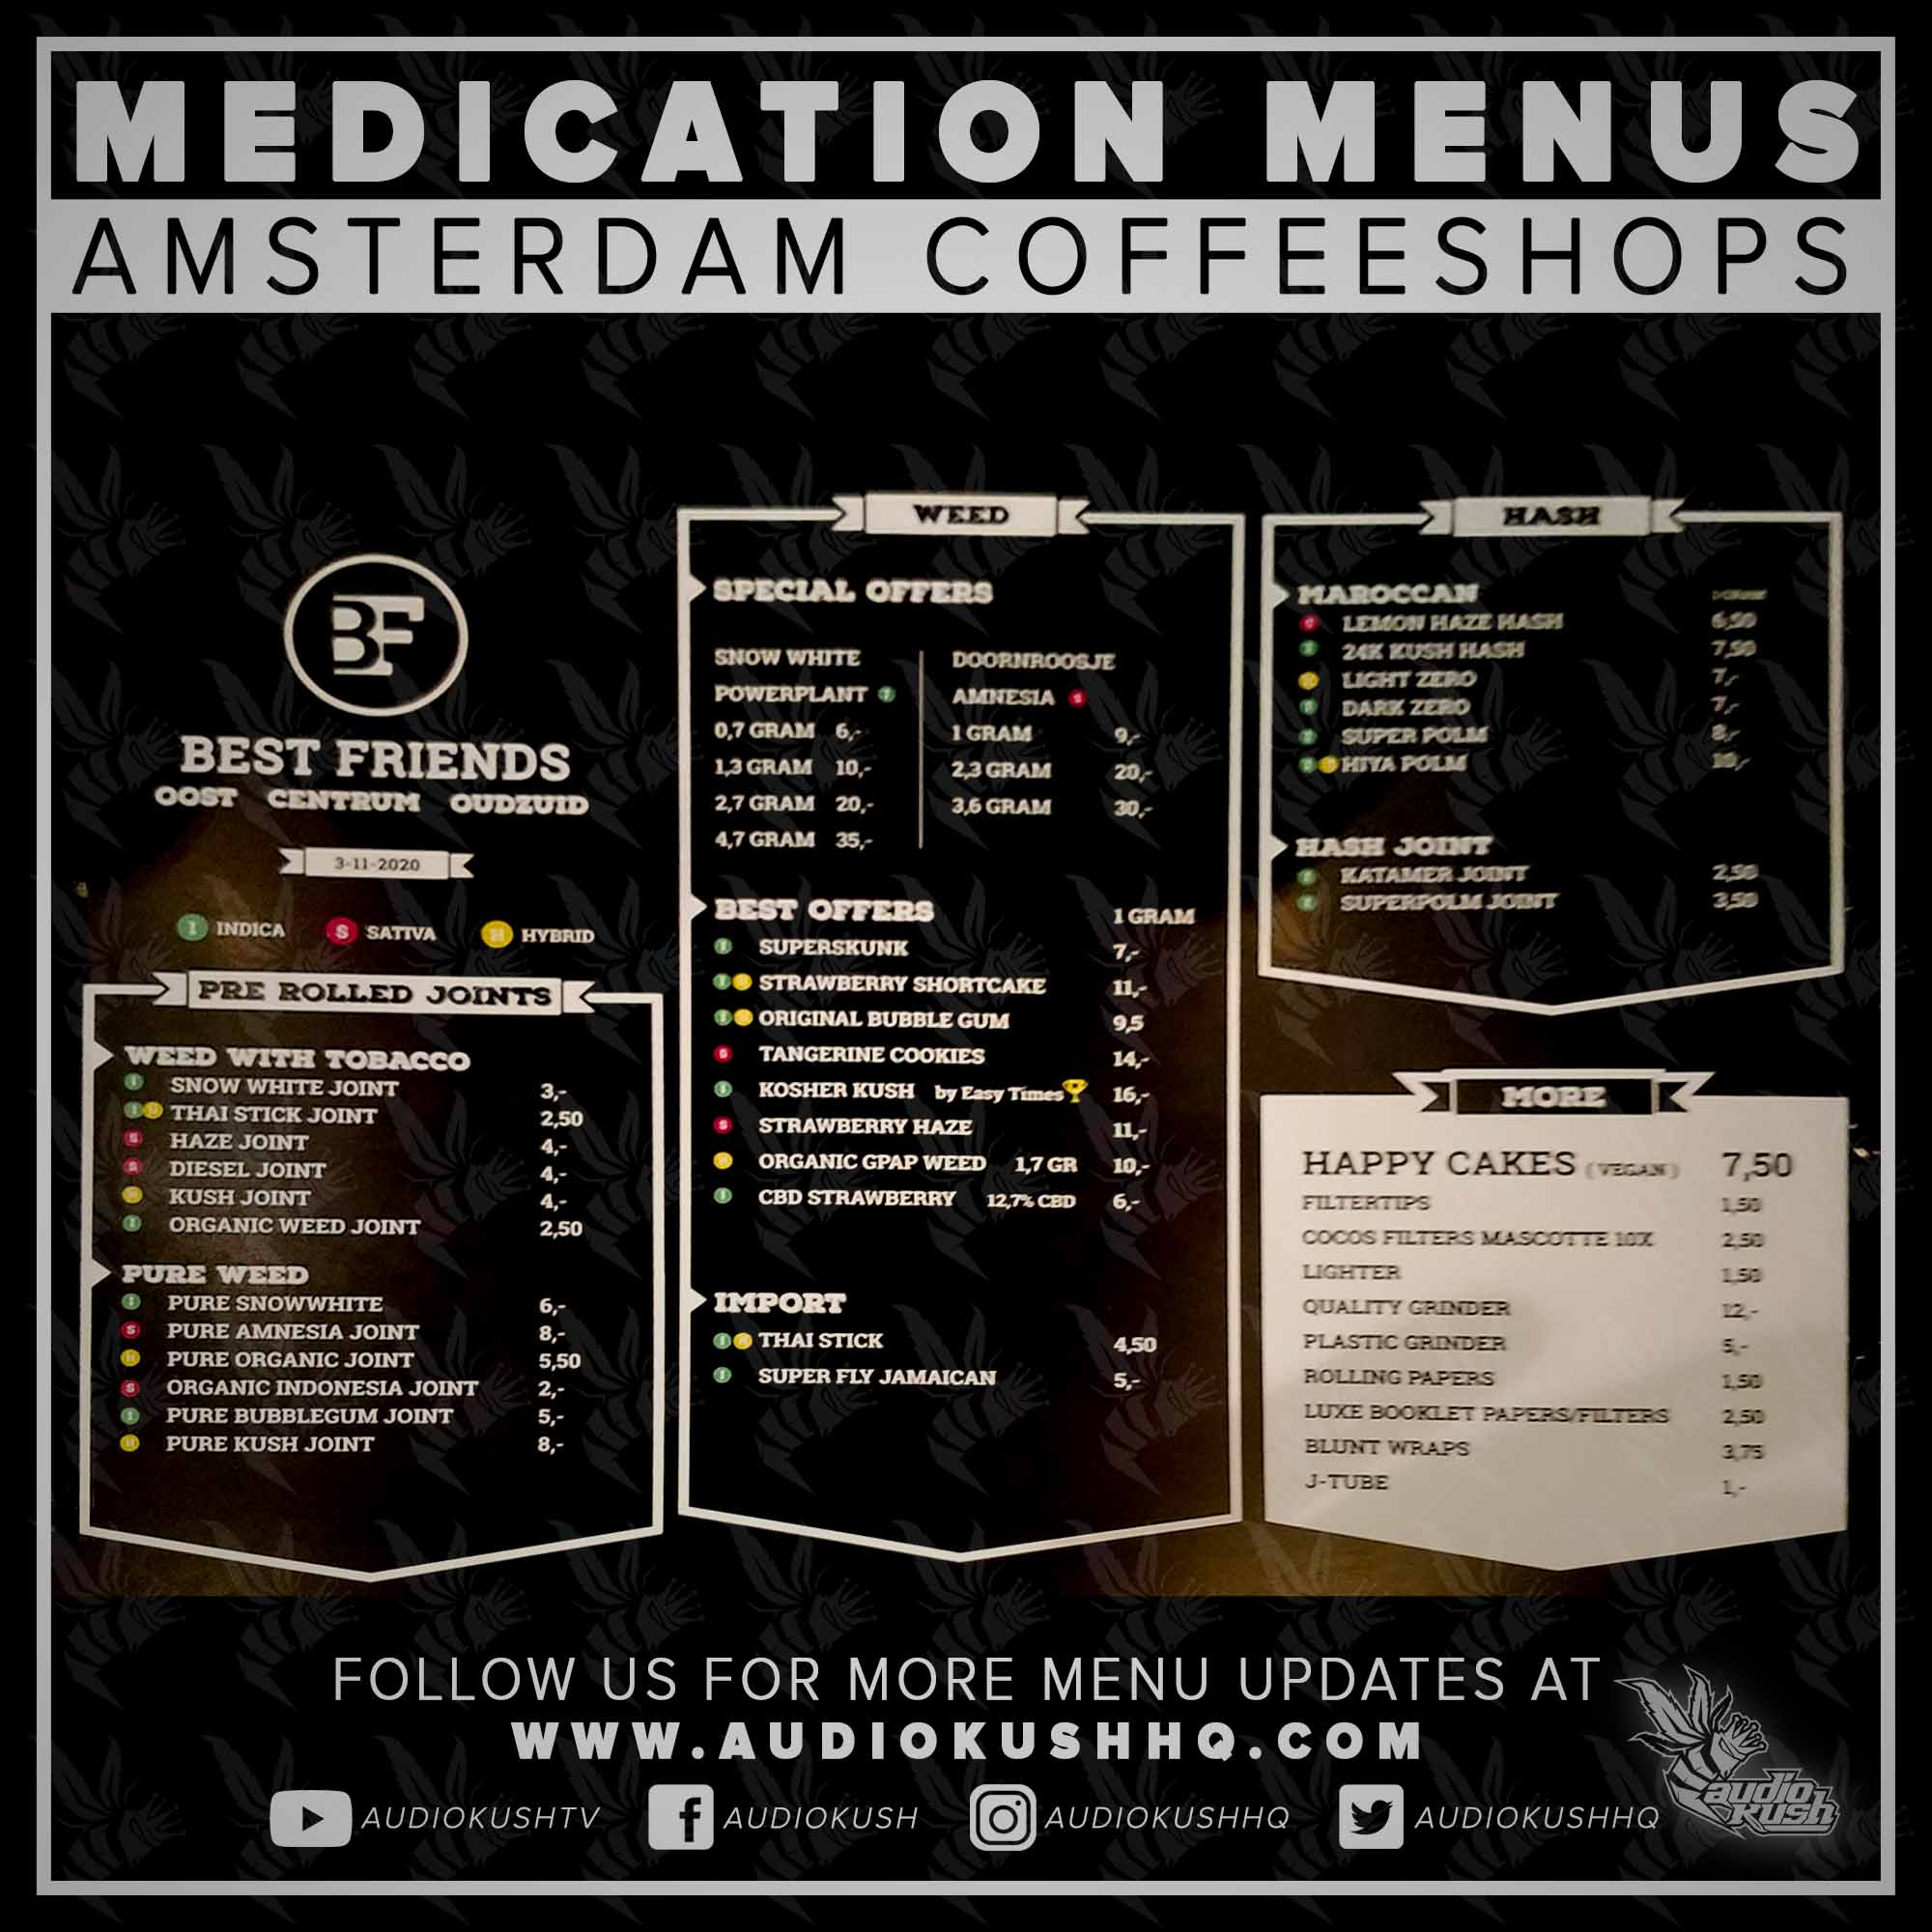 Coffeeshop Menu, Amsterdam, Best Friends, Nov 9 2020